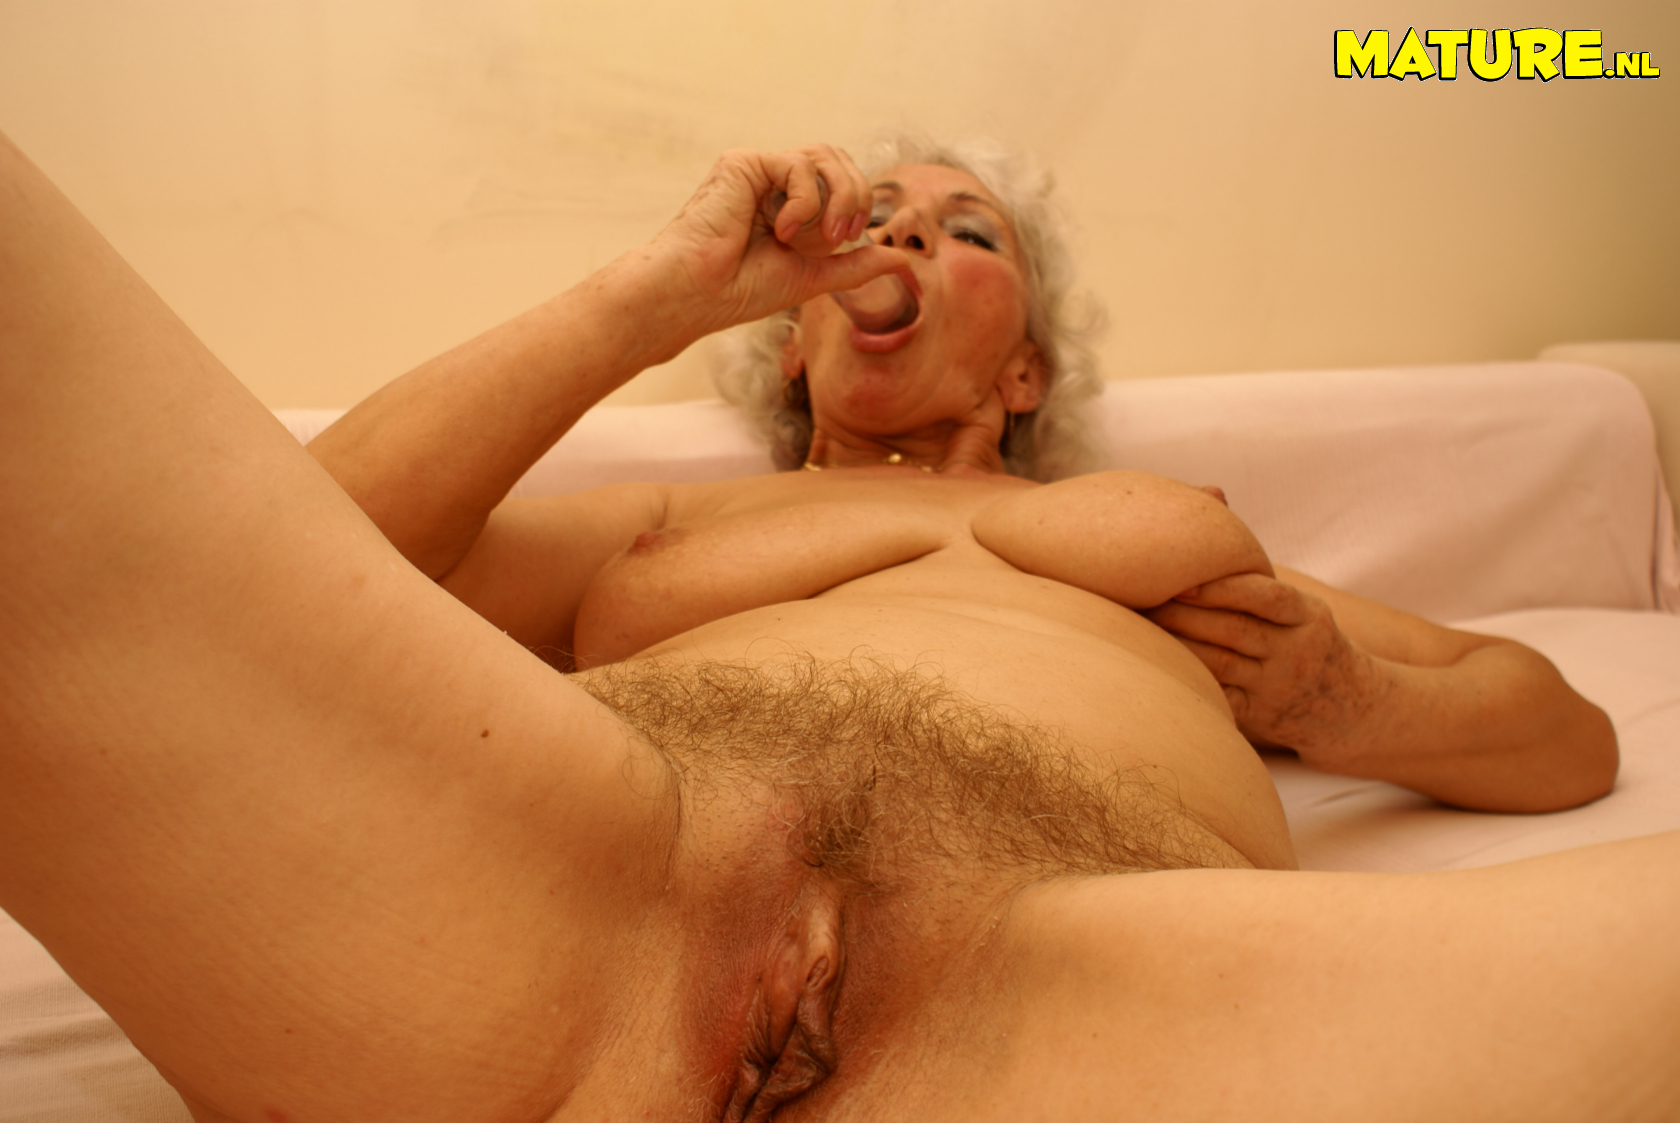 This granny luvs toying with her raw cunny